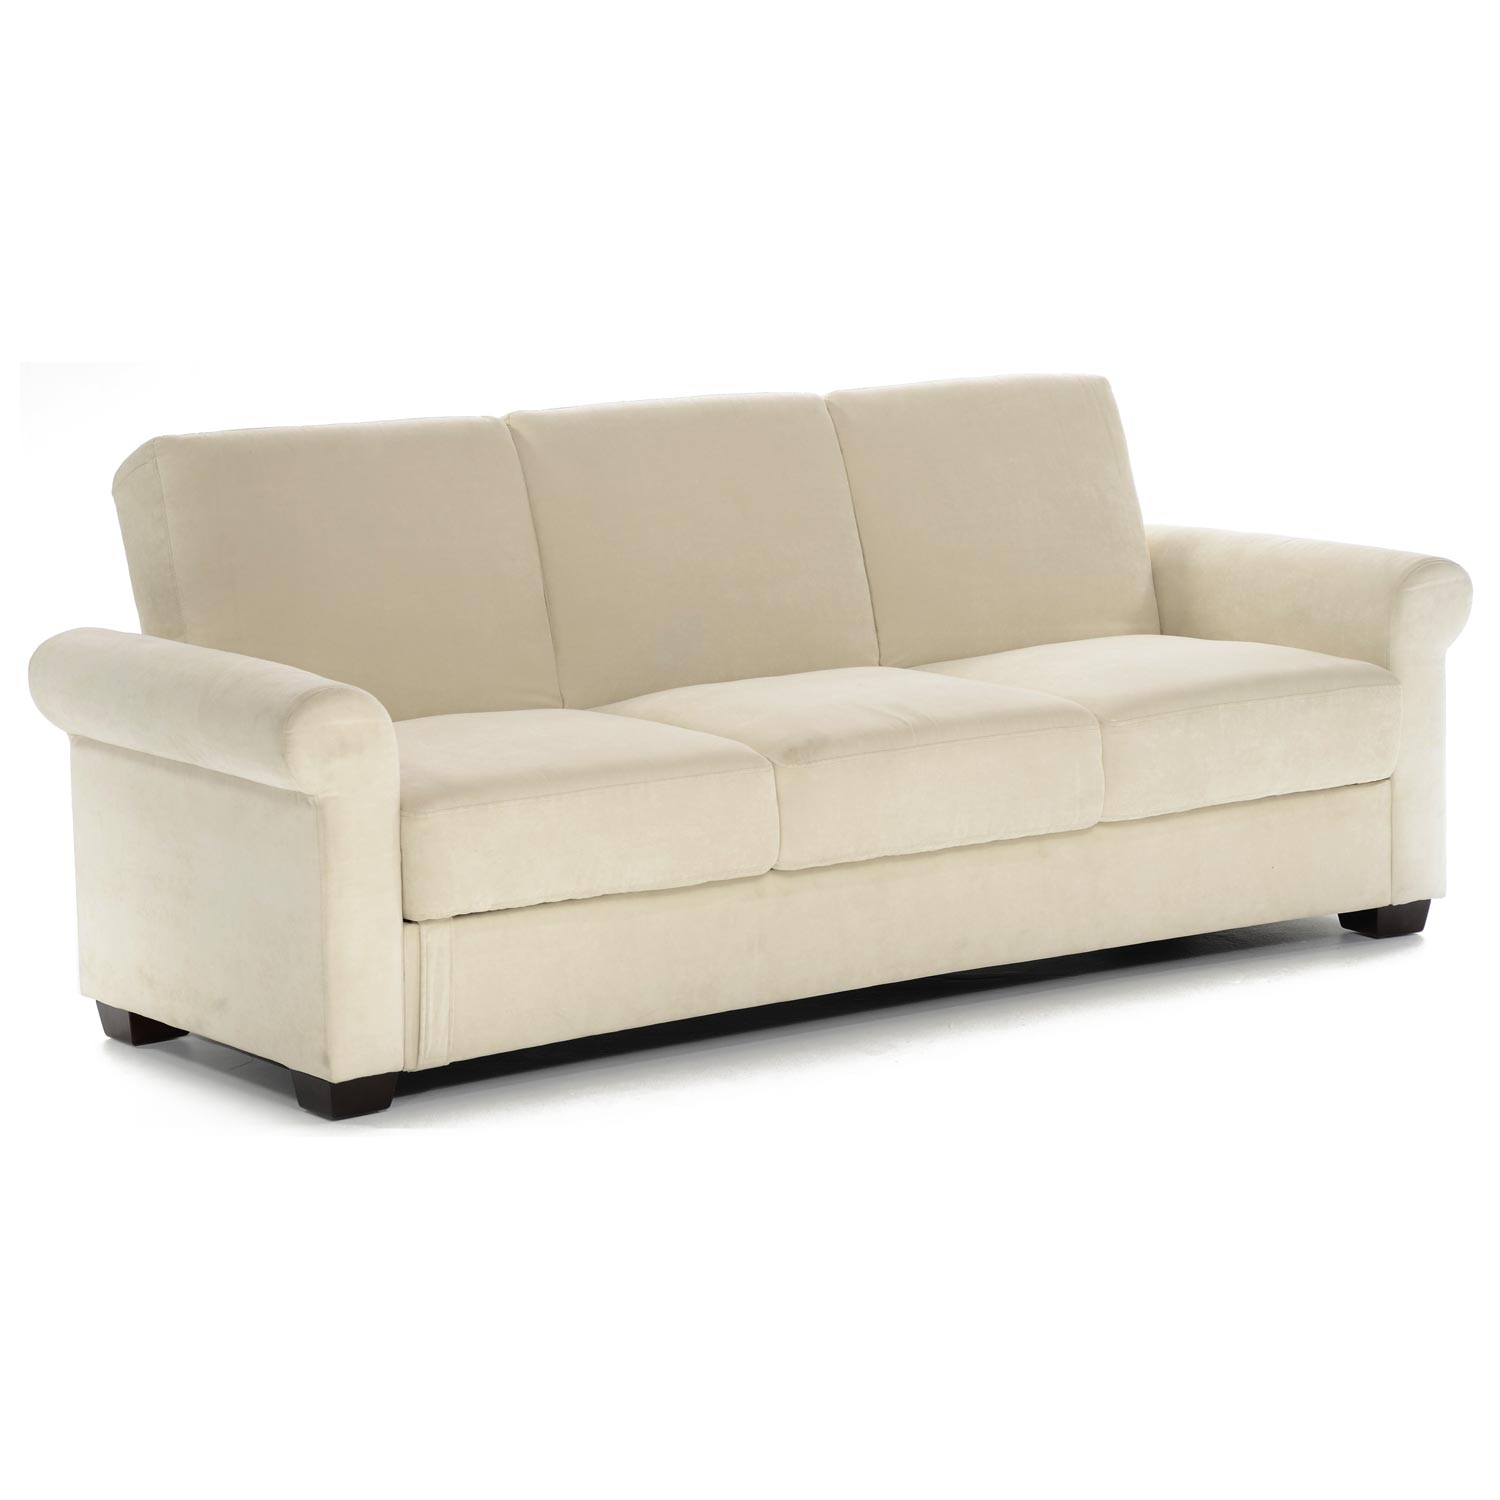 Thomas Fabric Convertible Sofa   Storage, Light Brown   LSS SA TMS  ...